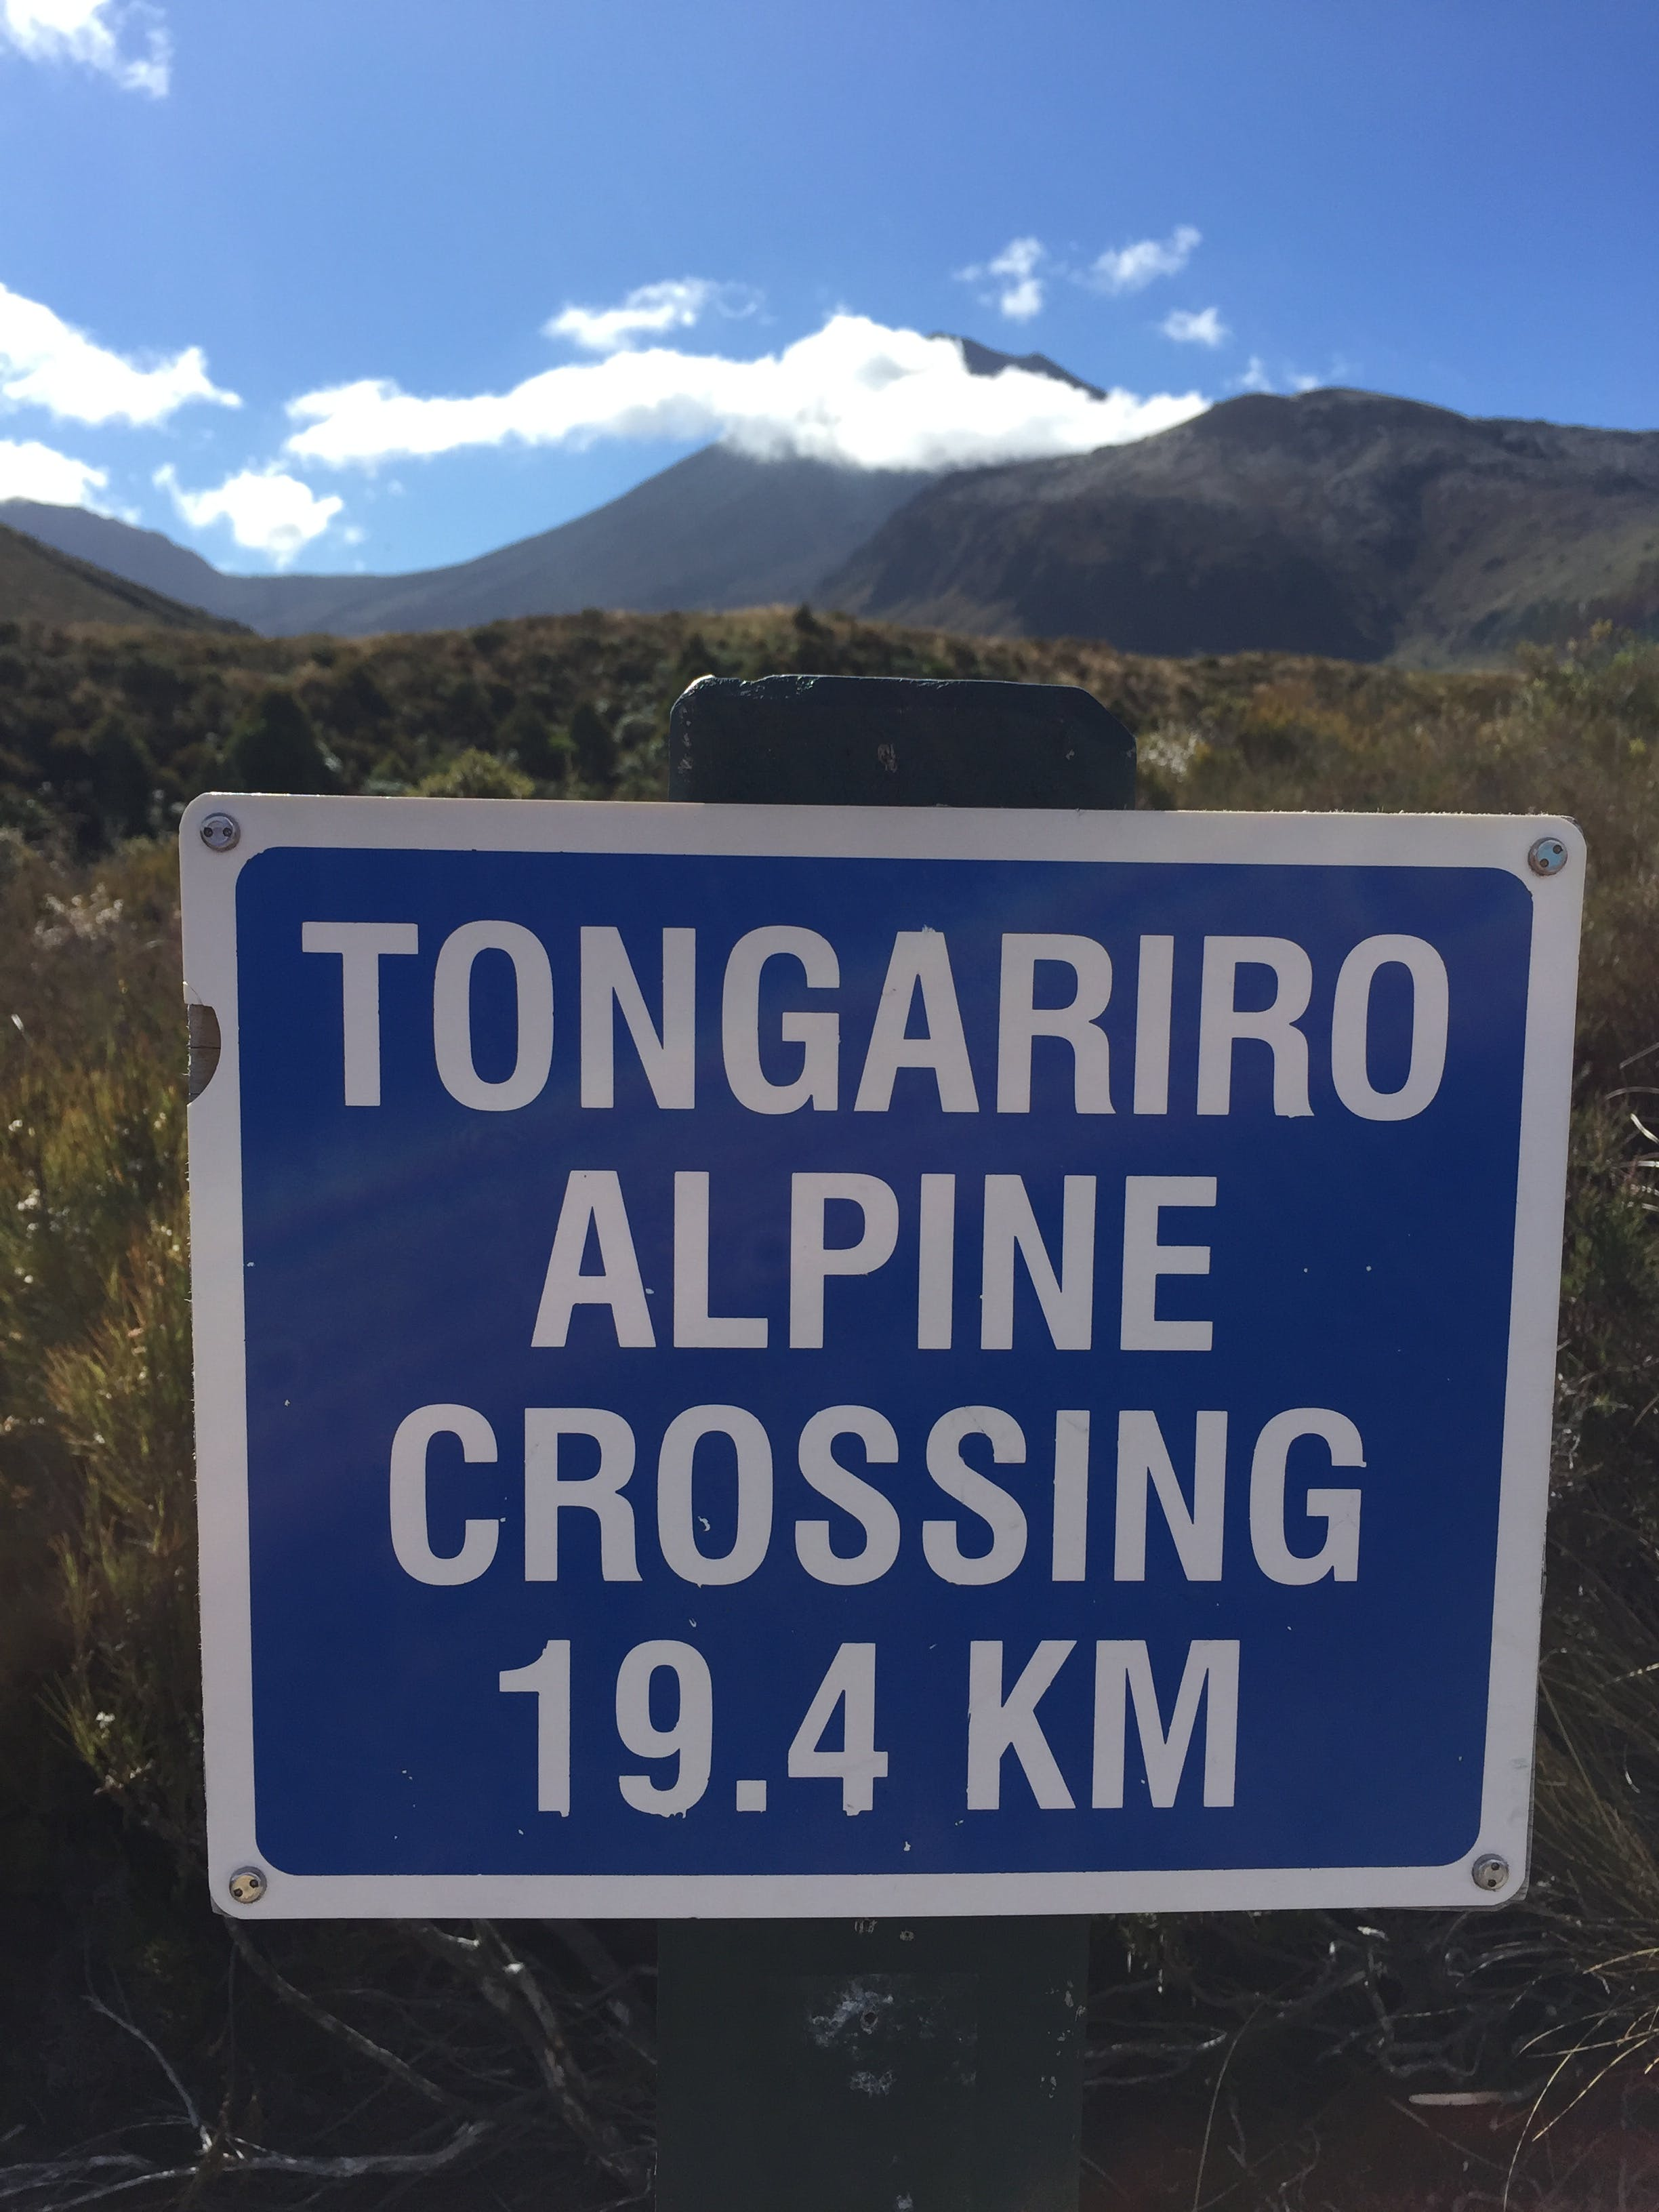 Start of the Tongariro Alpine Crossing sign with 19.4km to go.